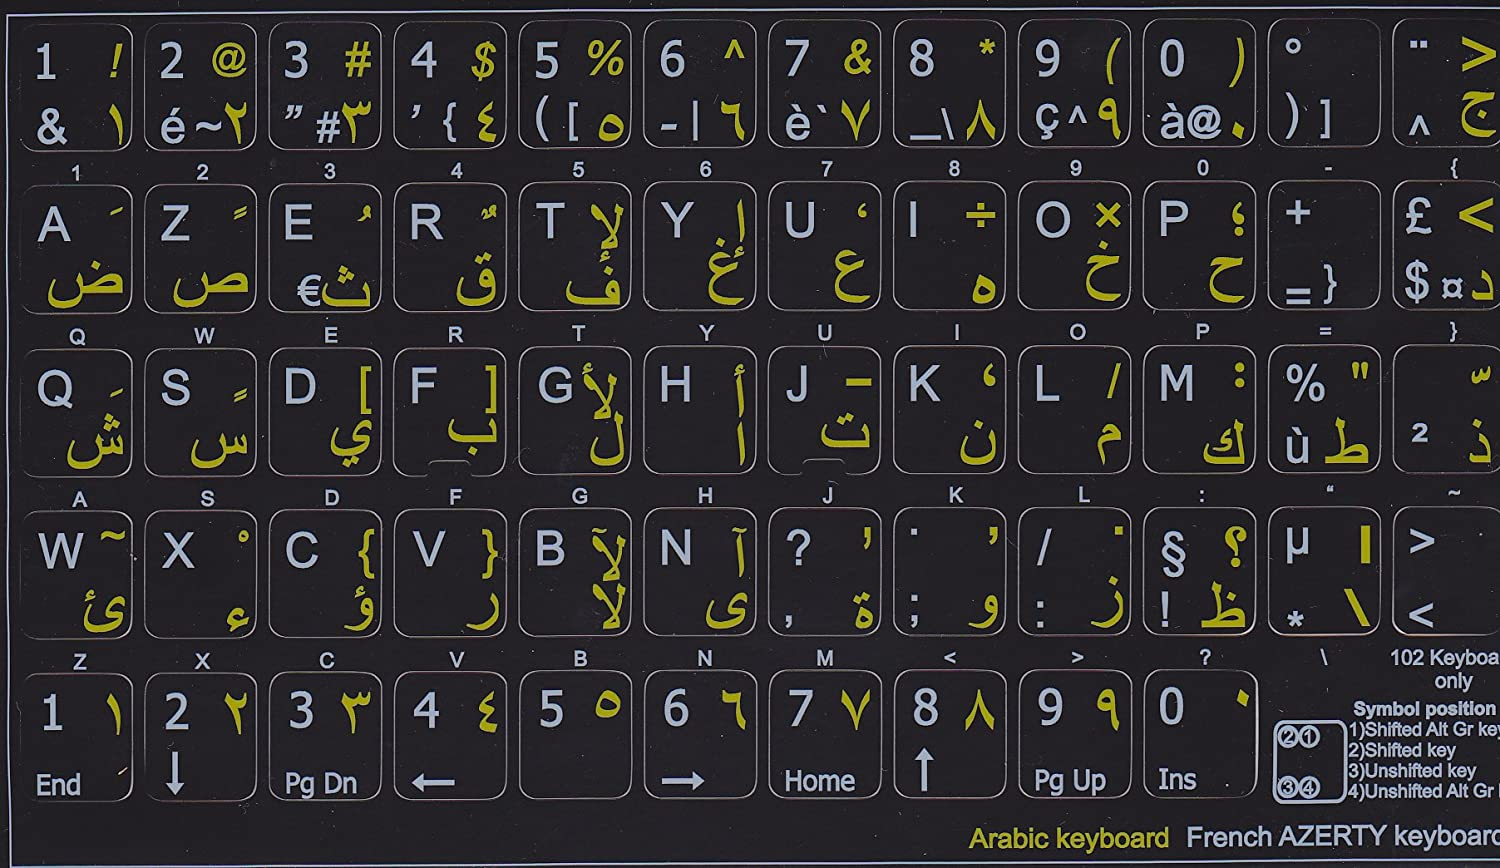 French aserty Keyboard Sticker Black Non Transparent